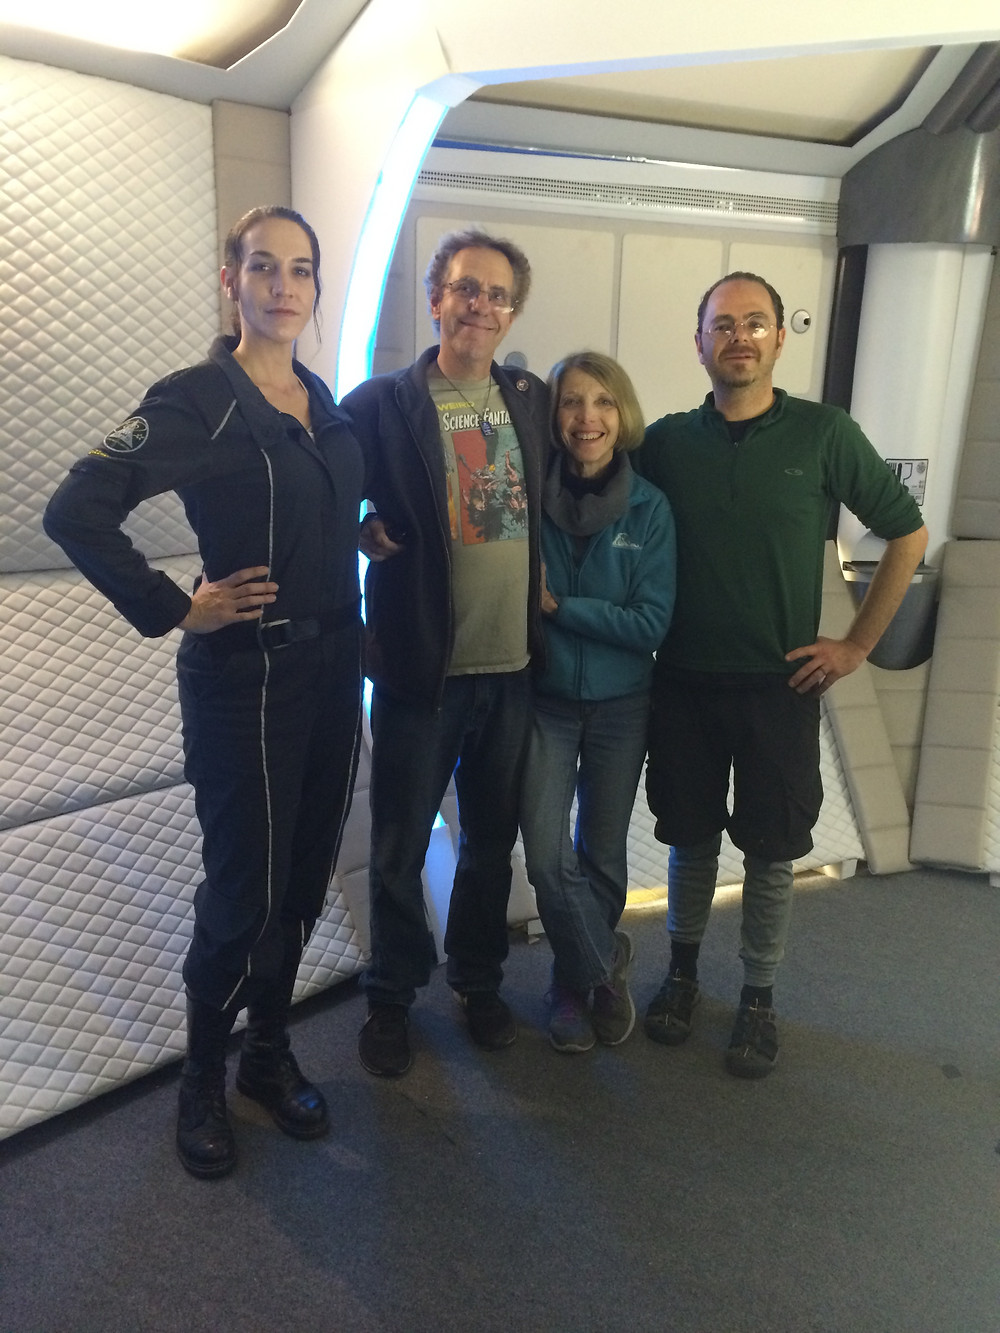 Marc and Elaine Zicree of Space Command came by for a visit